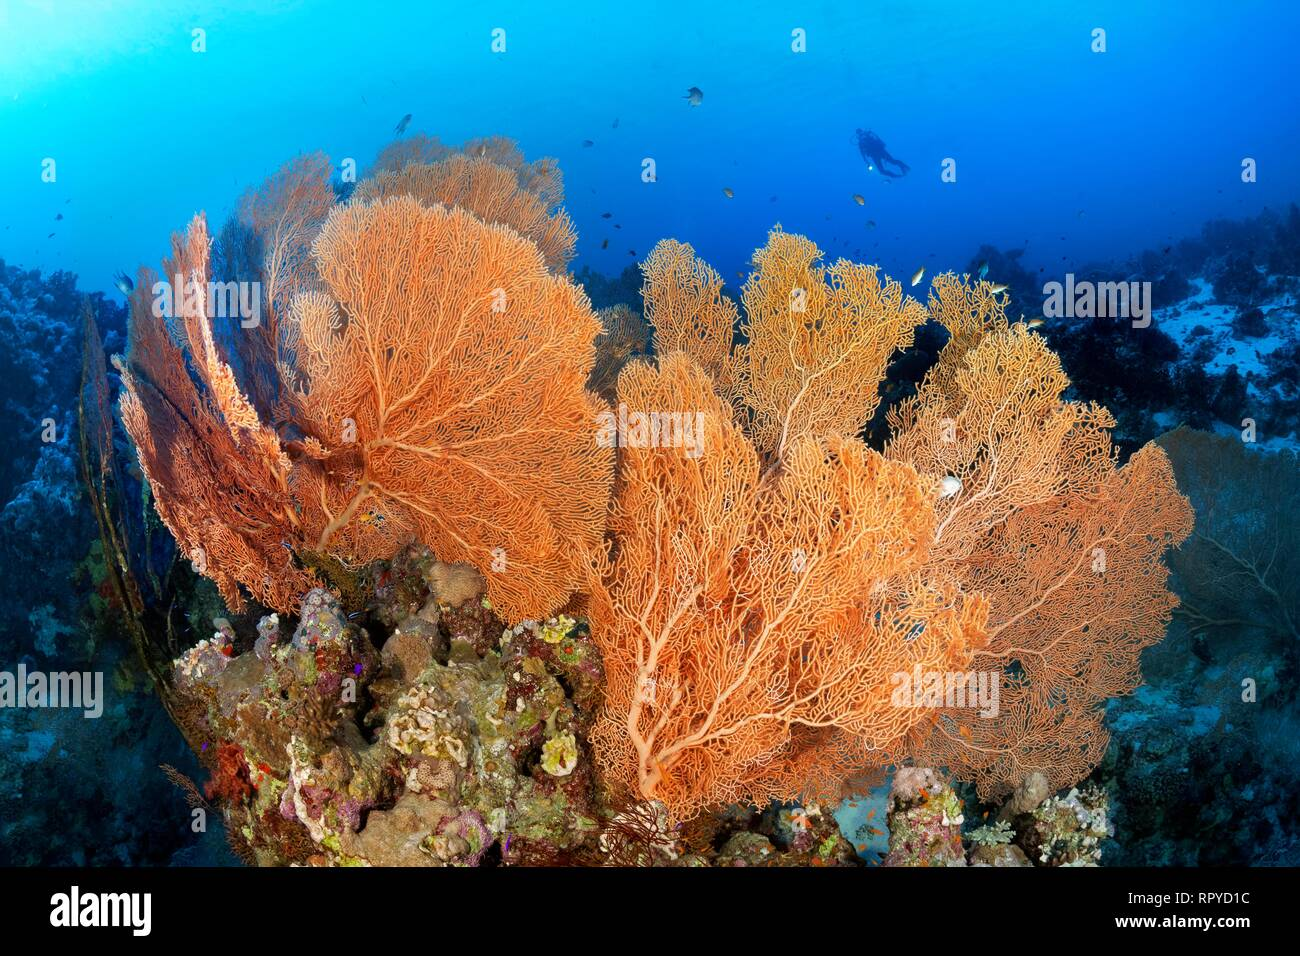 Diver floats over coral reef ridge with Giant Sea Fans (Annella mollis), Red Sea, Egypt, Red Sea, Egypt - Stock Image